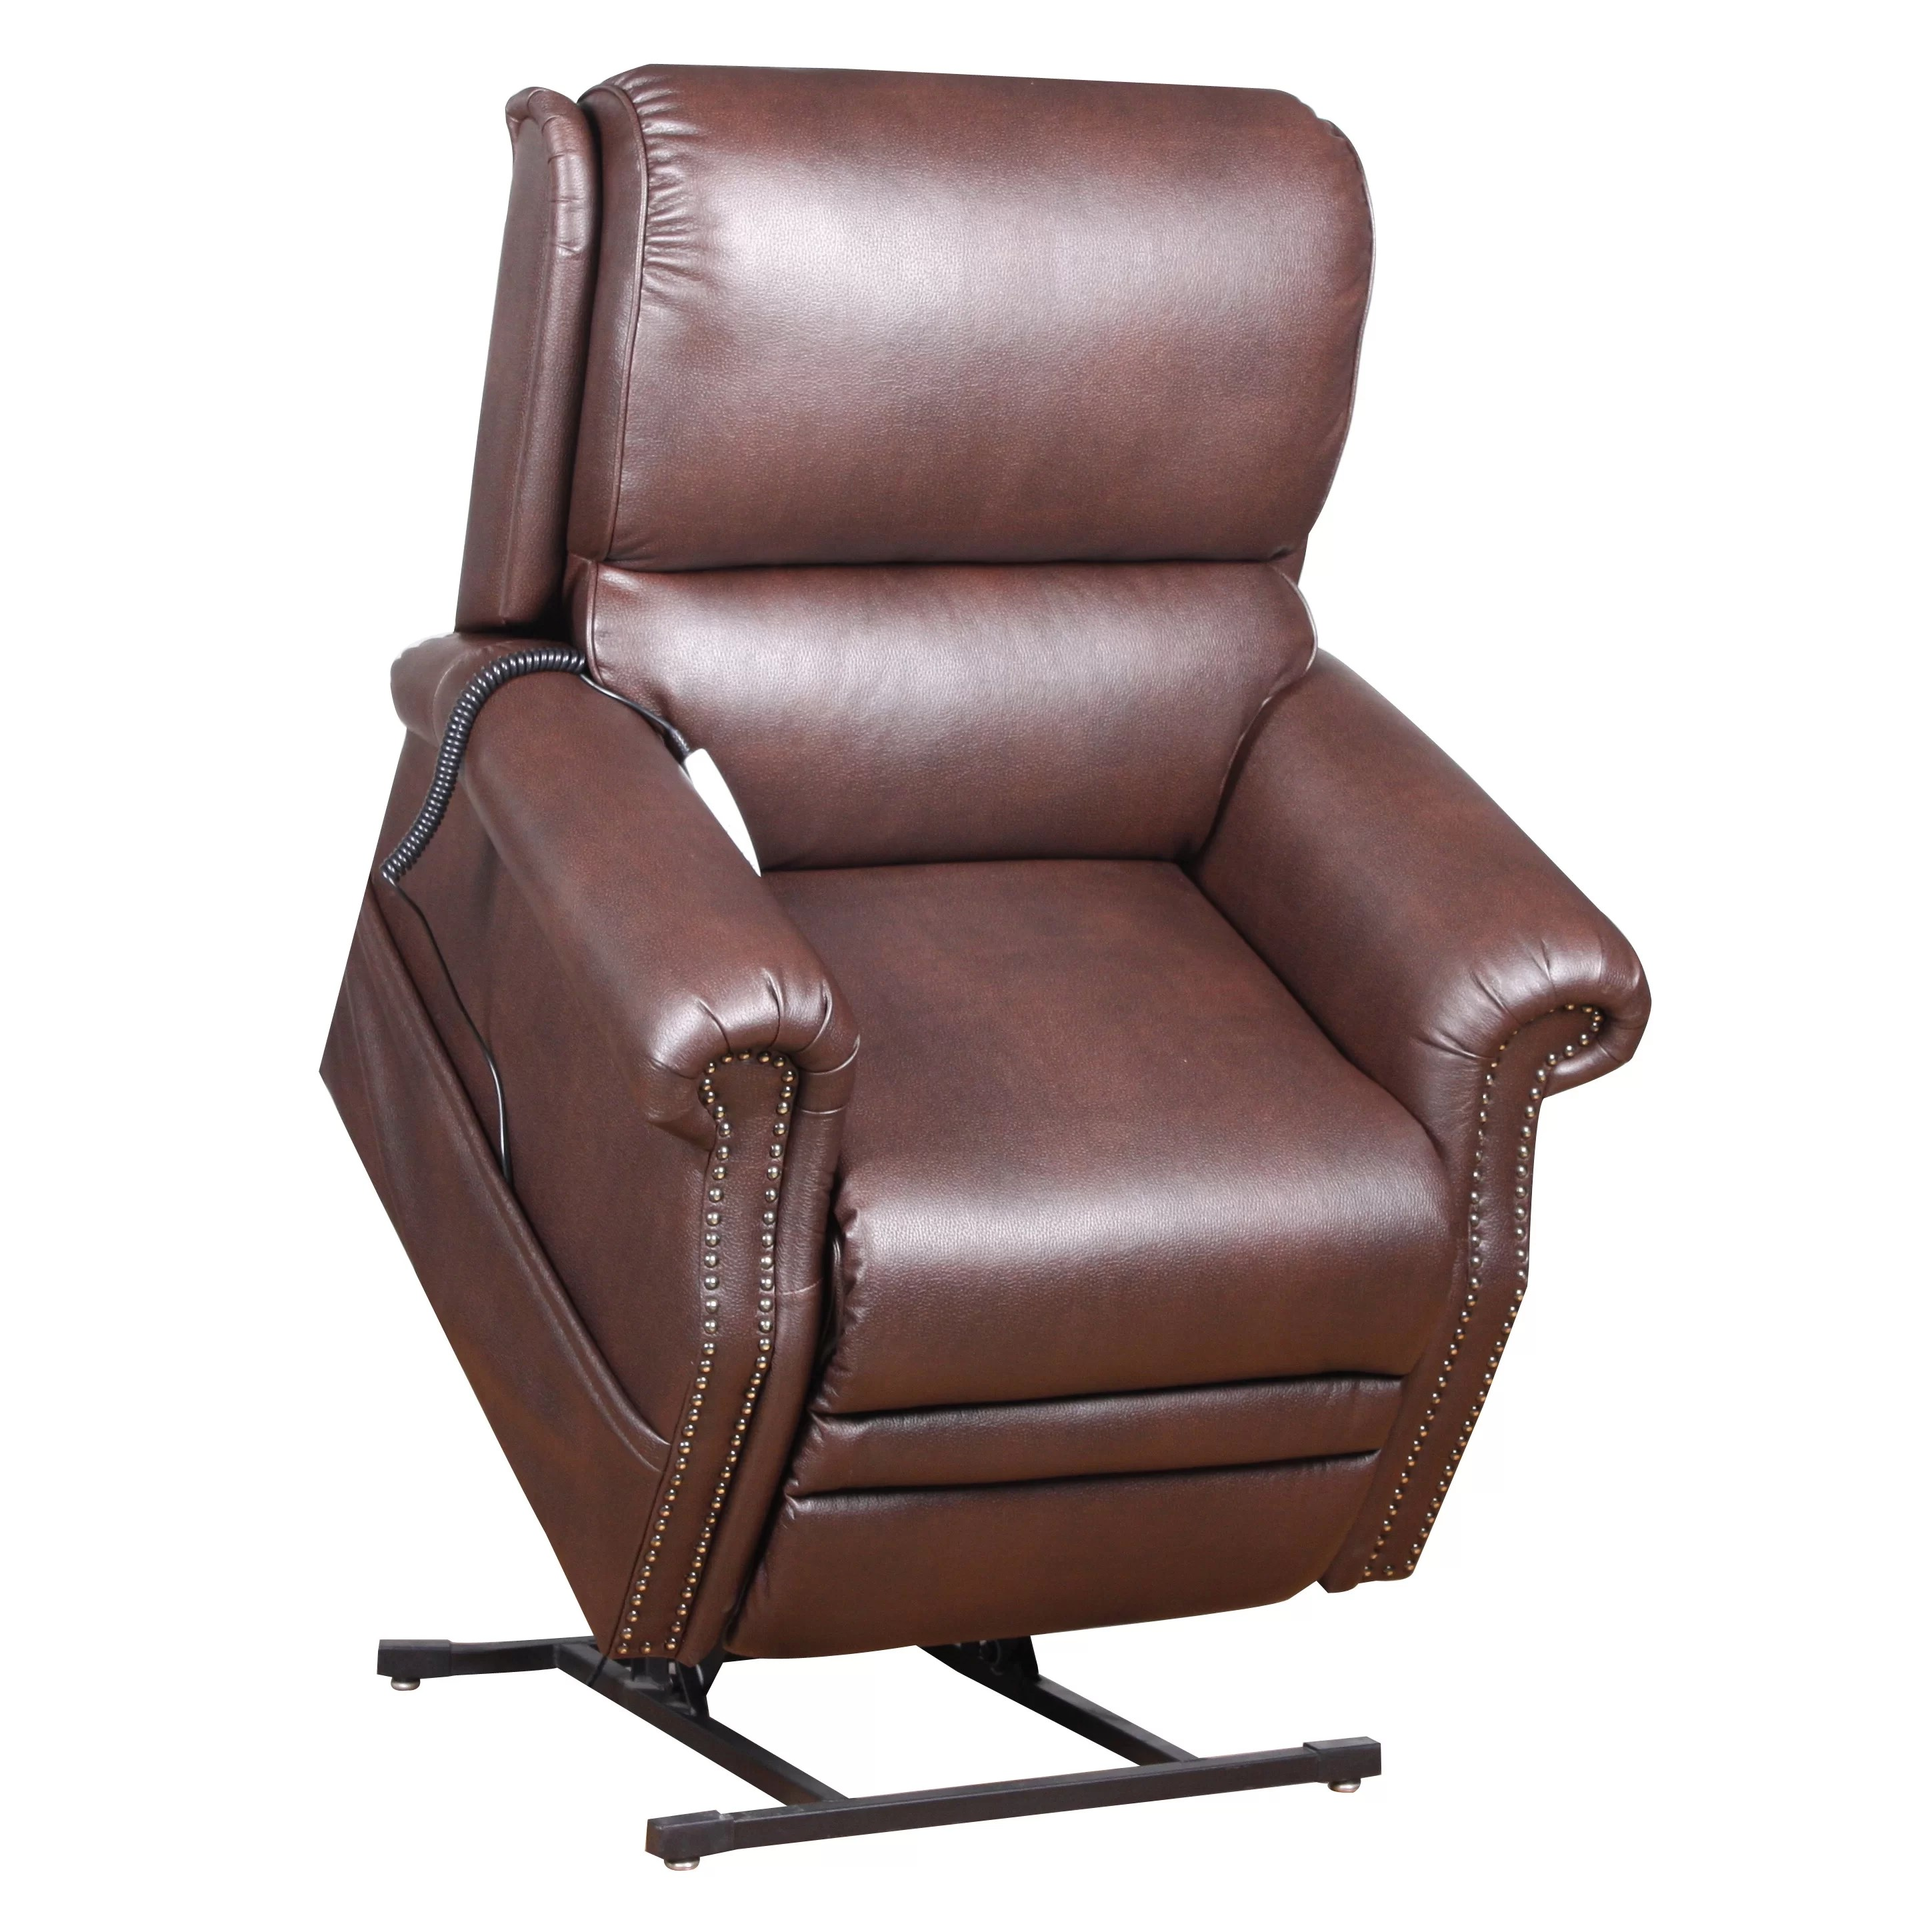 power recliner chairs reviews swivel harvey norman serta lift sheffield and